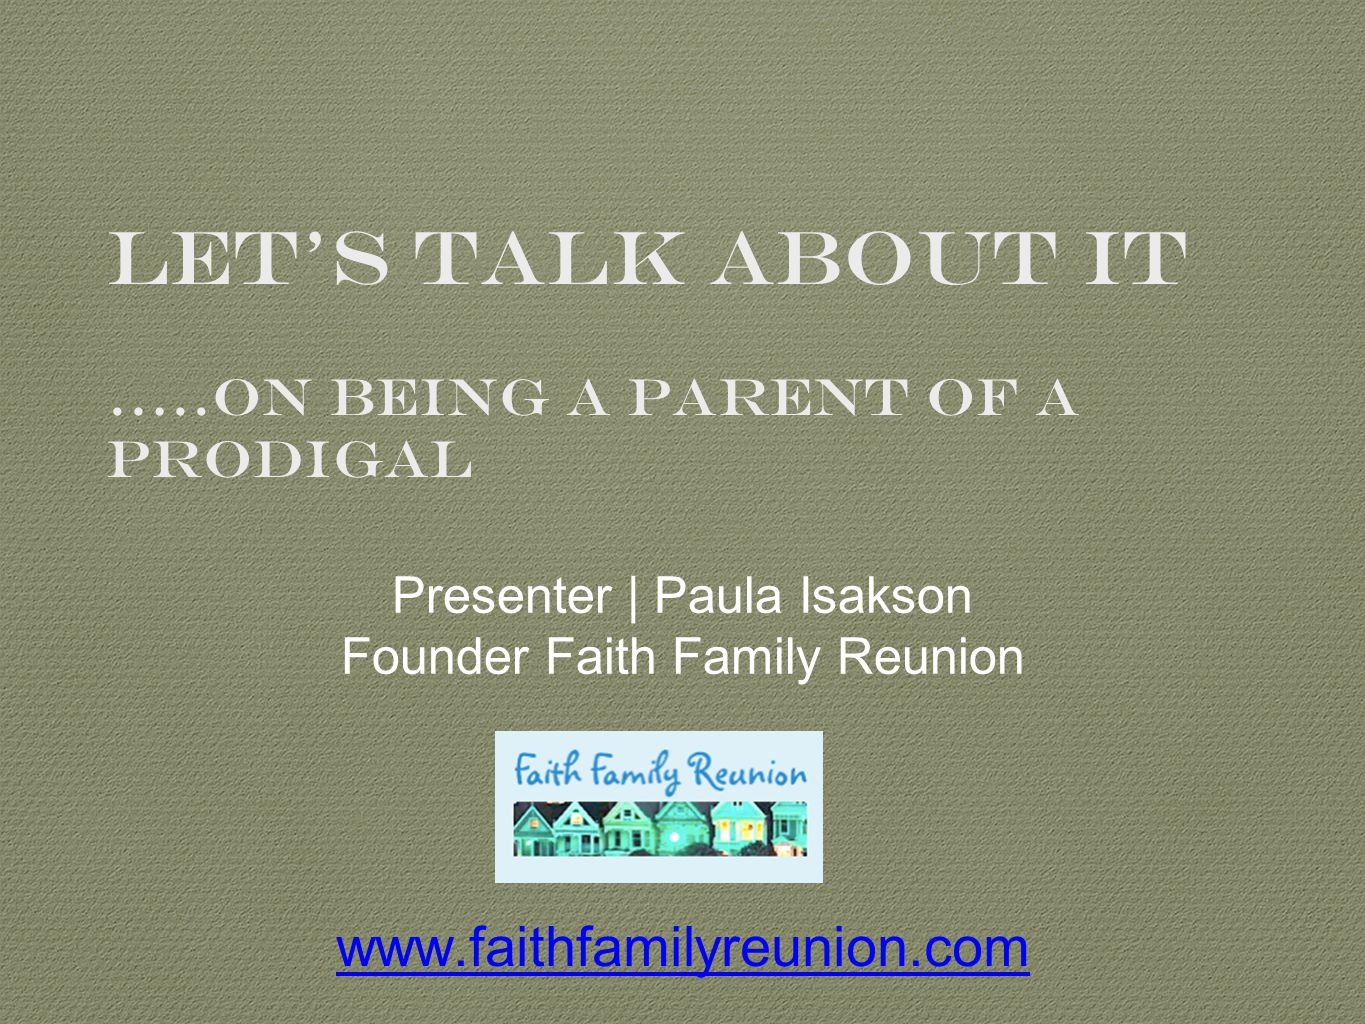 Let's Talk About It …..On Being A Parent Of A Prodigal Presenter | Paula Isakson Founder Faith Family Reunion www.faithfamilyreunion.com